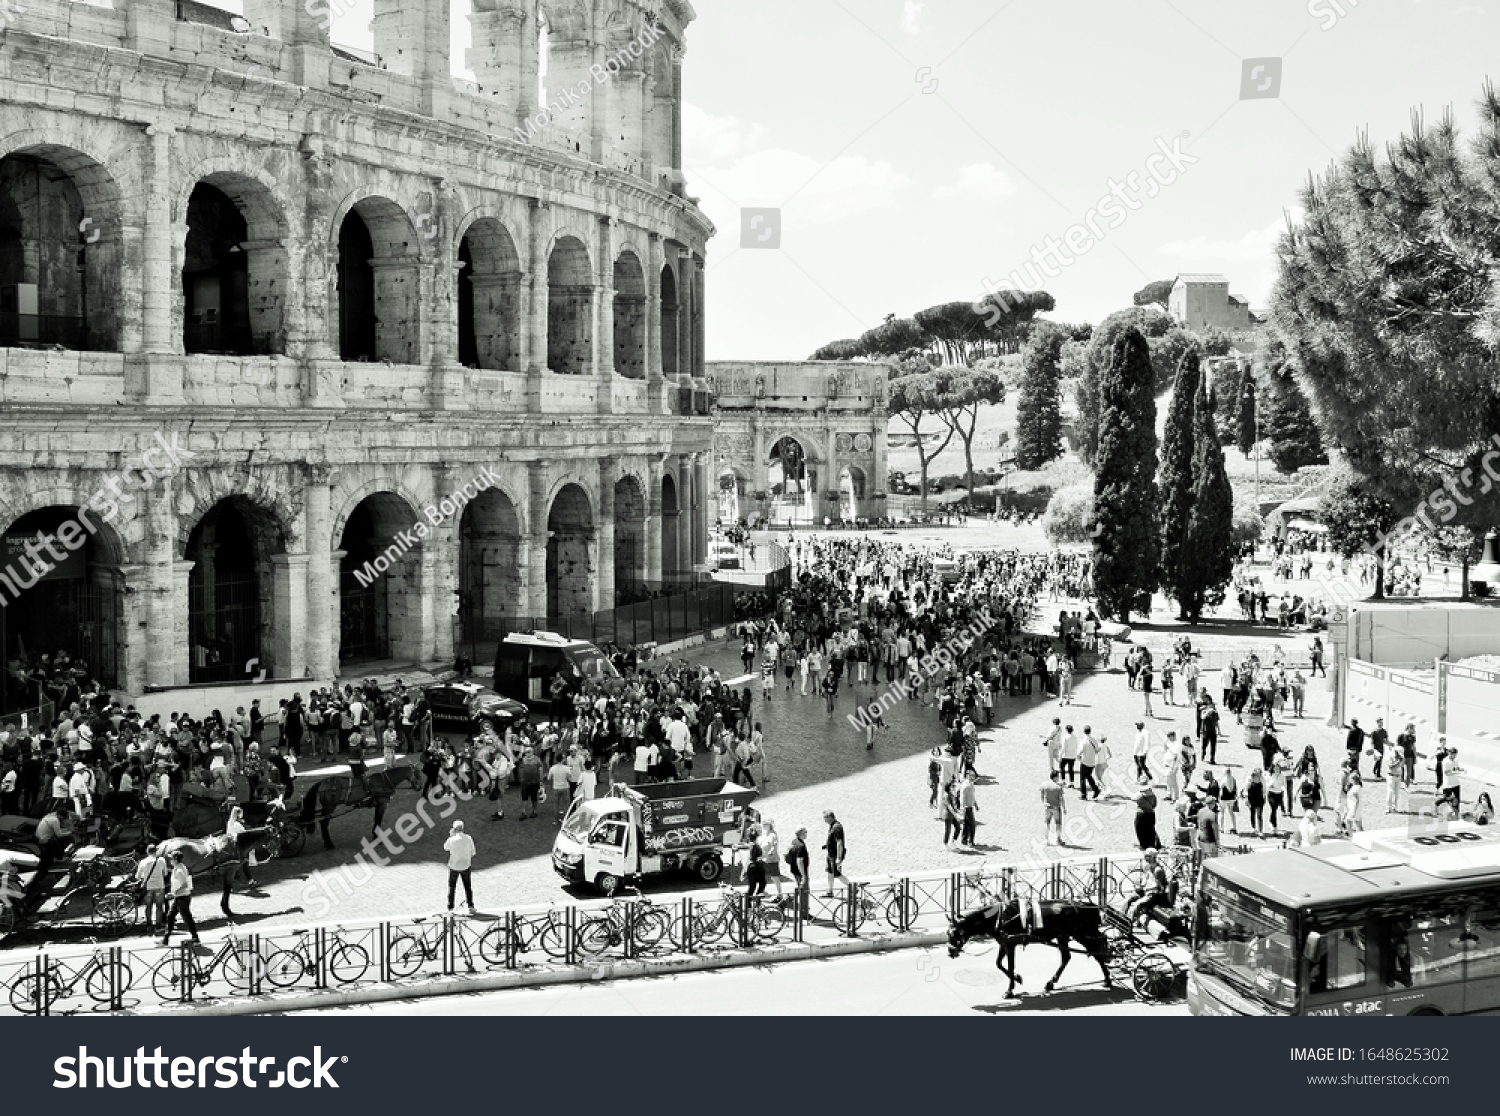 stock-photo-colosseum-in-rome-italy-may-